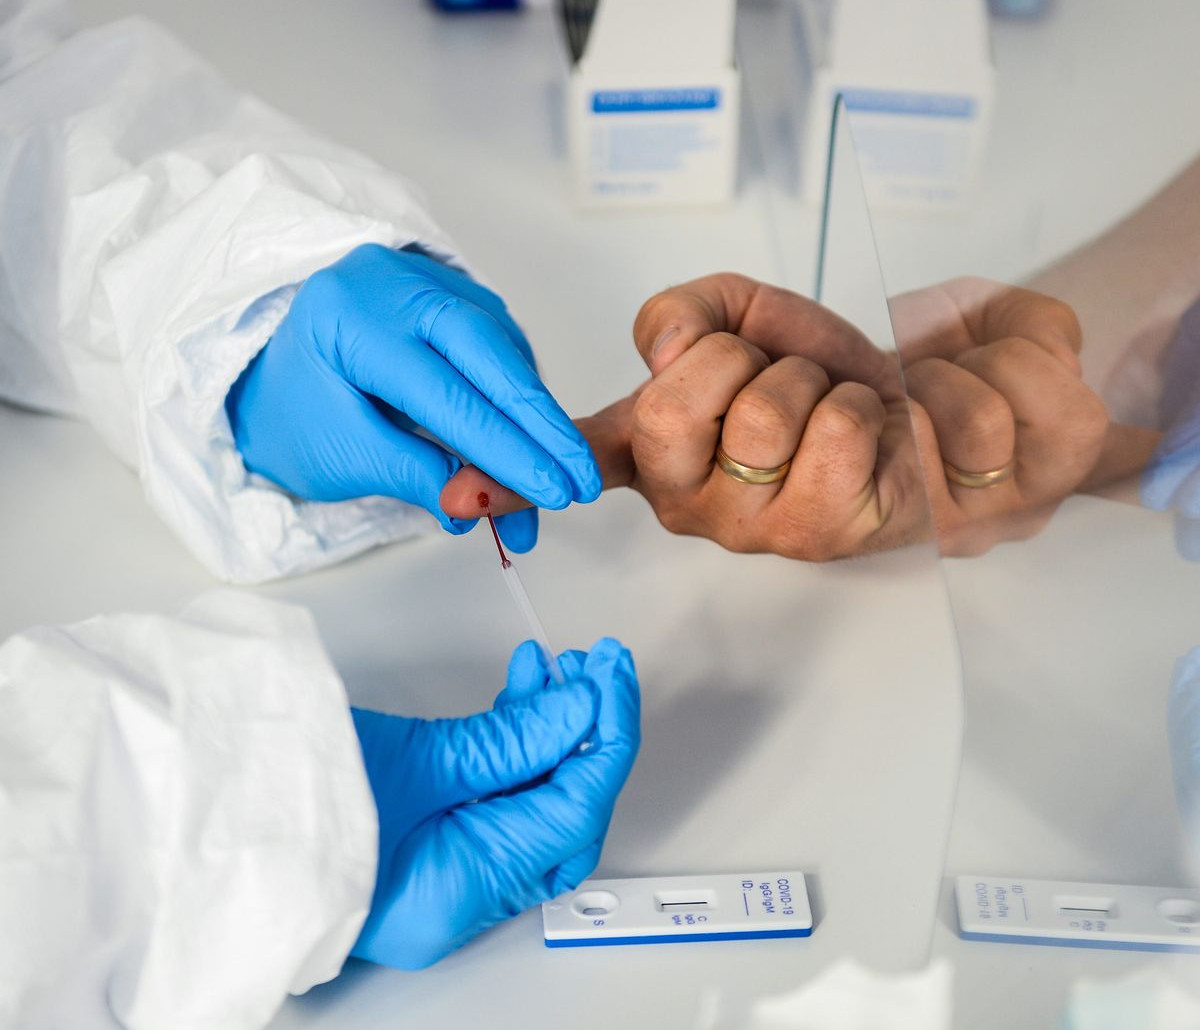 blood sample with pipette.jpg